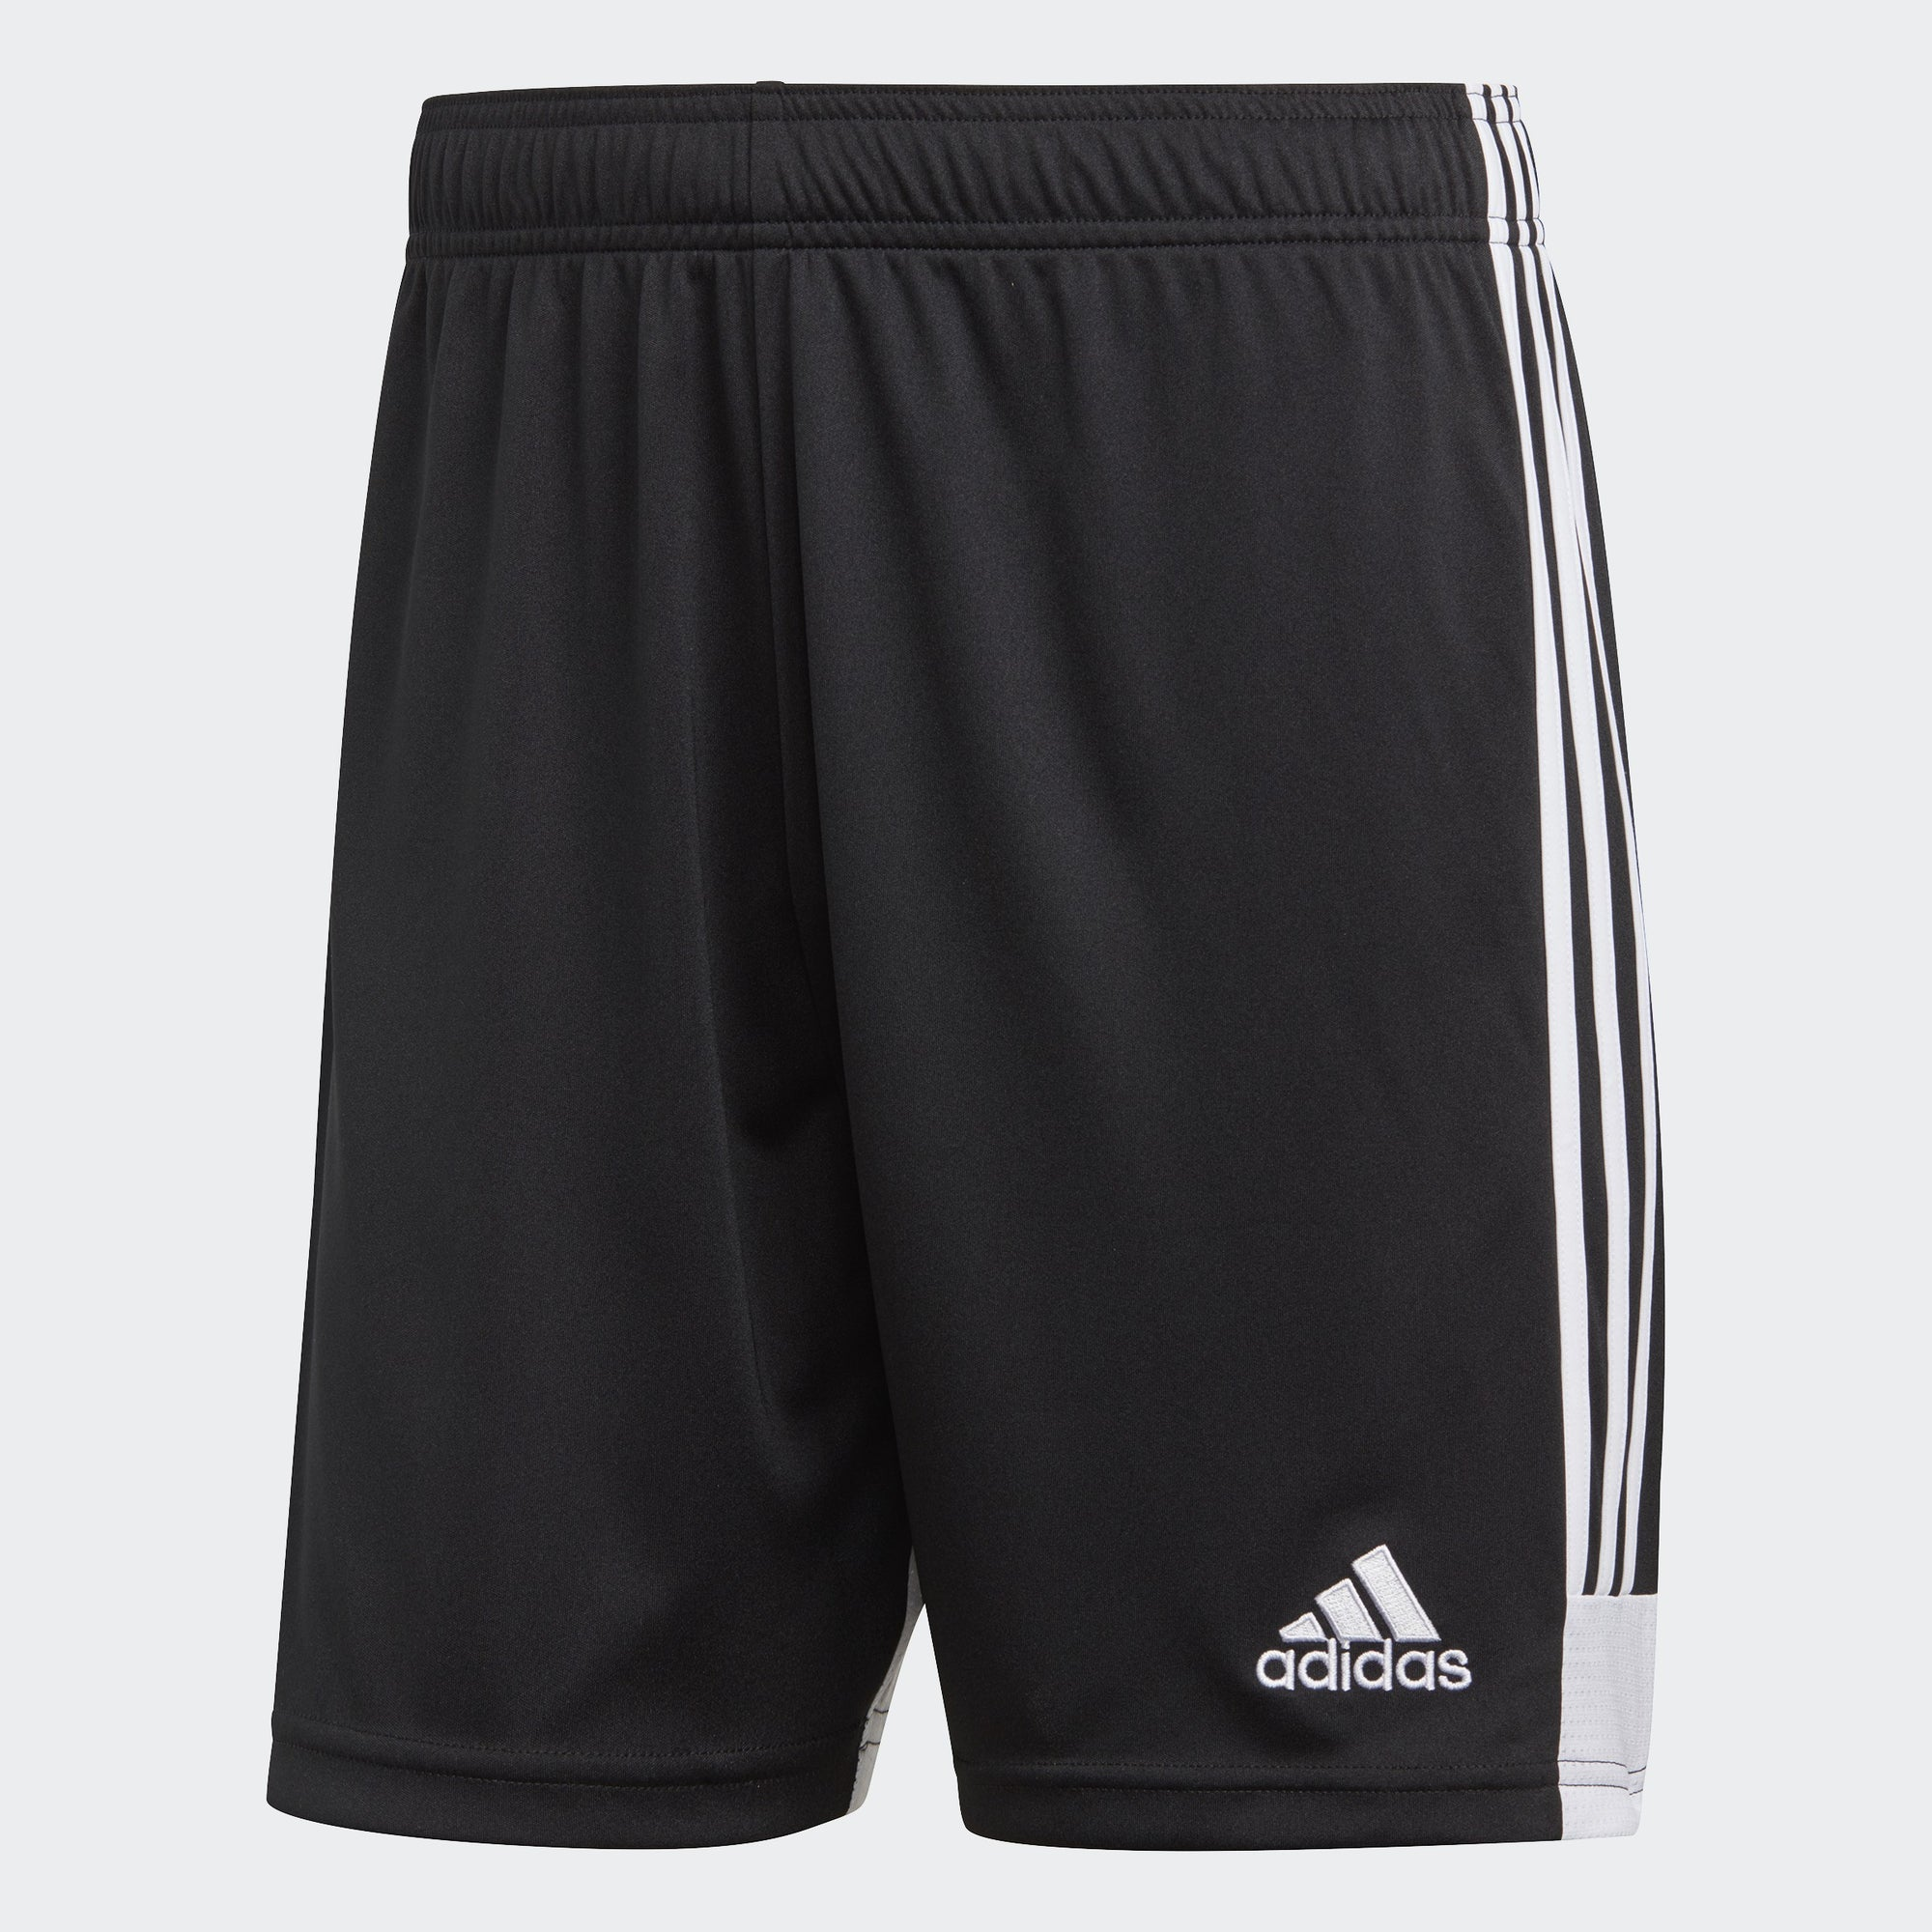 Men's Tastigo 19 Shorts - Black/White